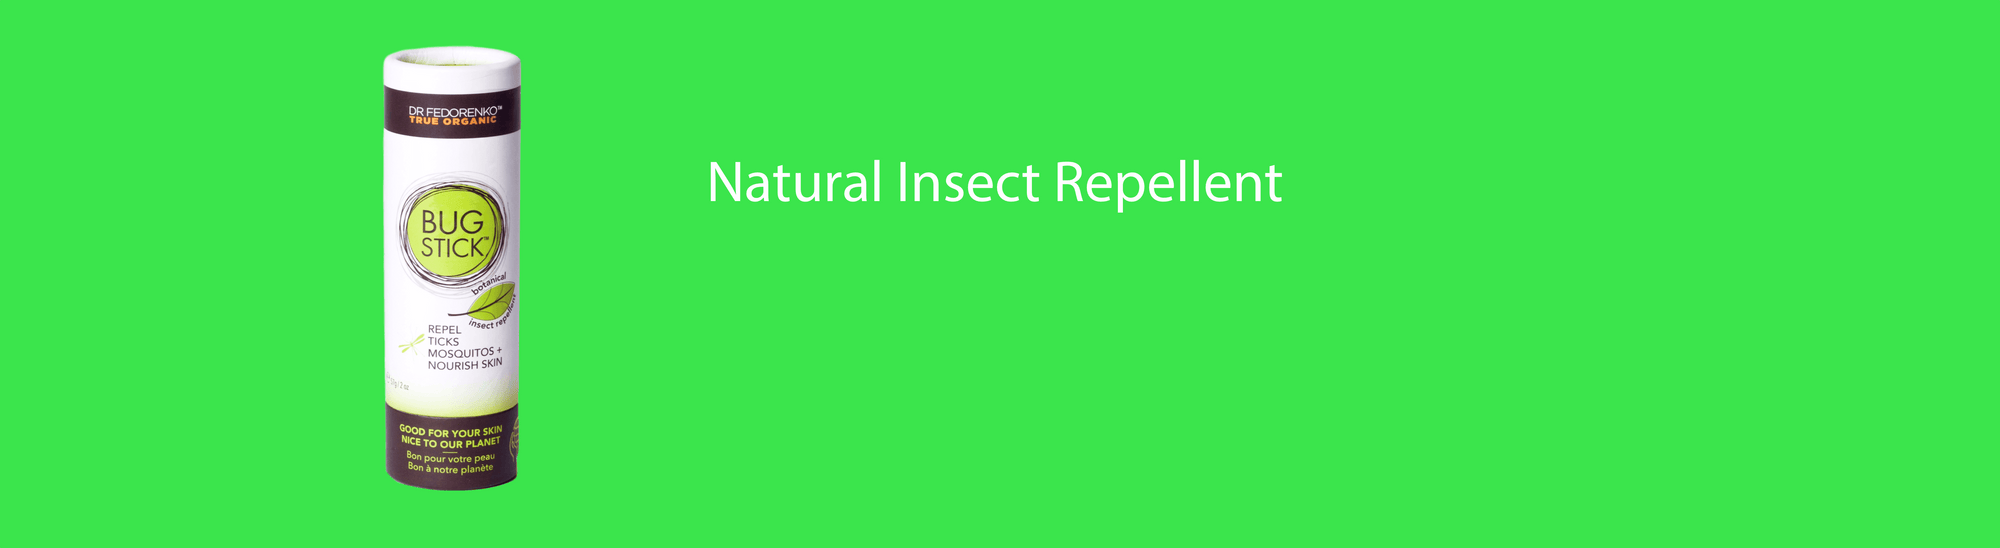 Natural Insect Repellent by Dr. Fedorenko True Organics